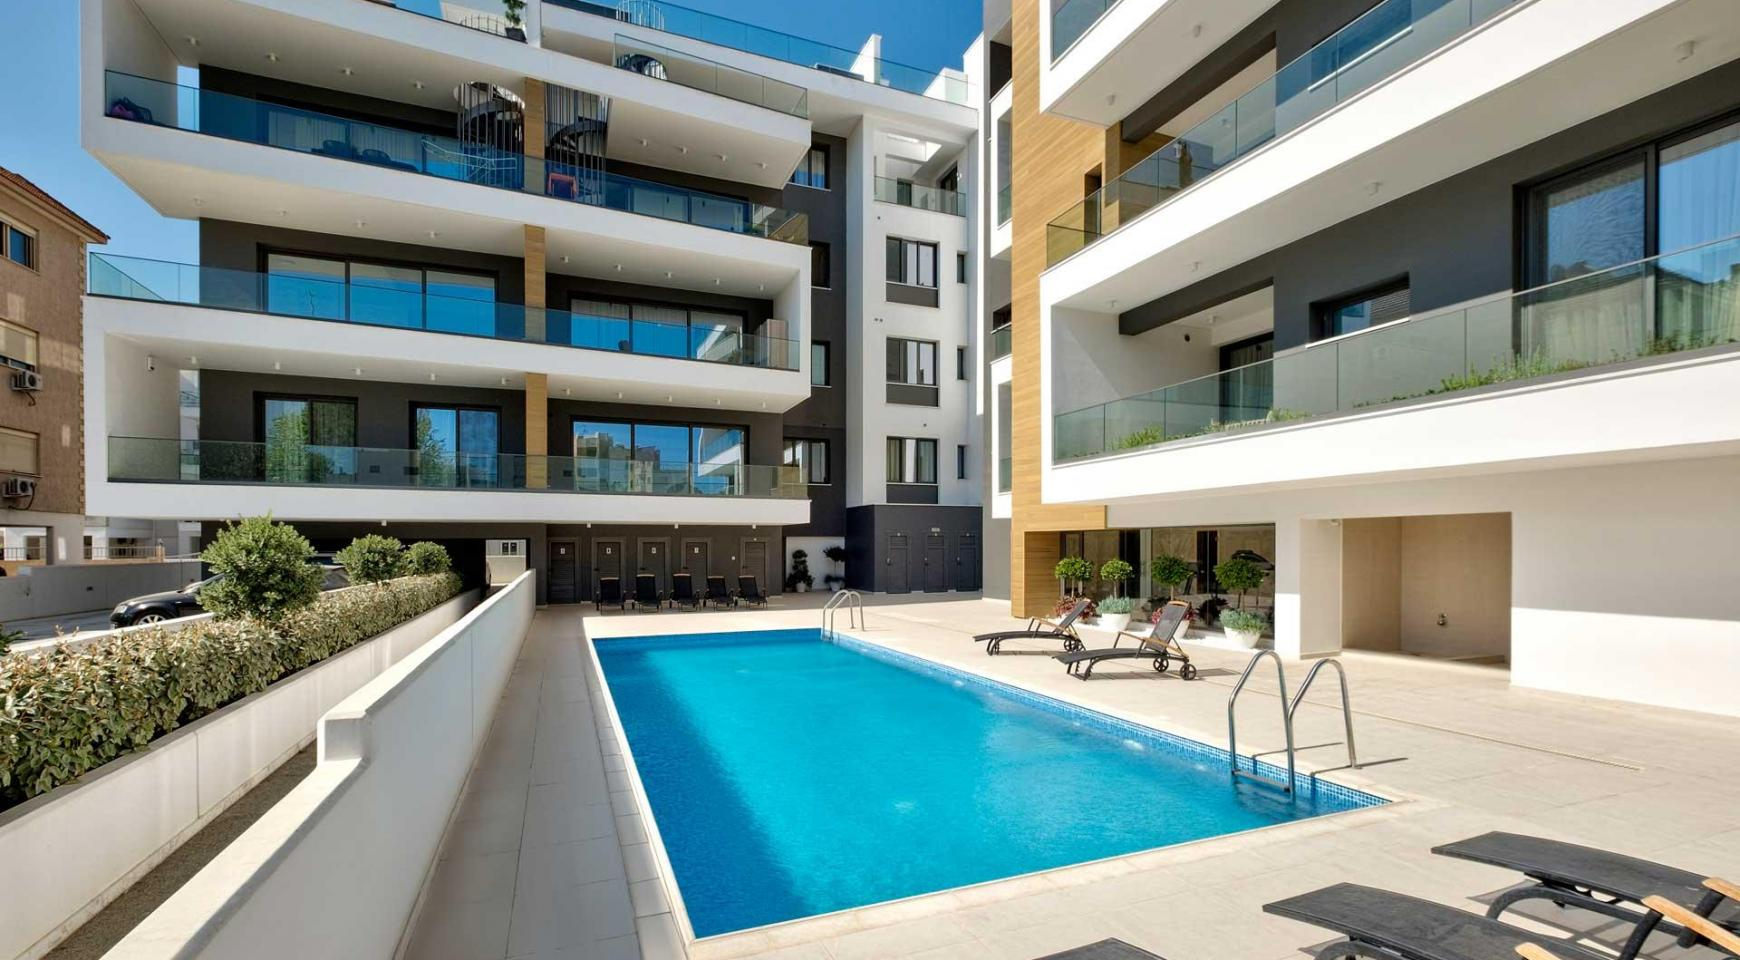 Contemporary 2 Bedroom Apartment in a New Complex near the Sea - 1